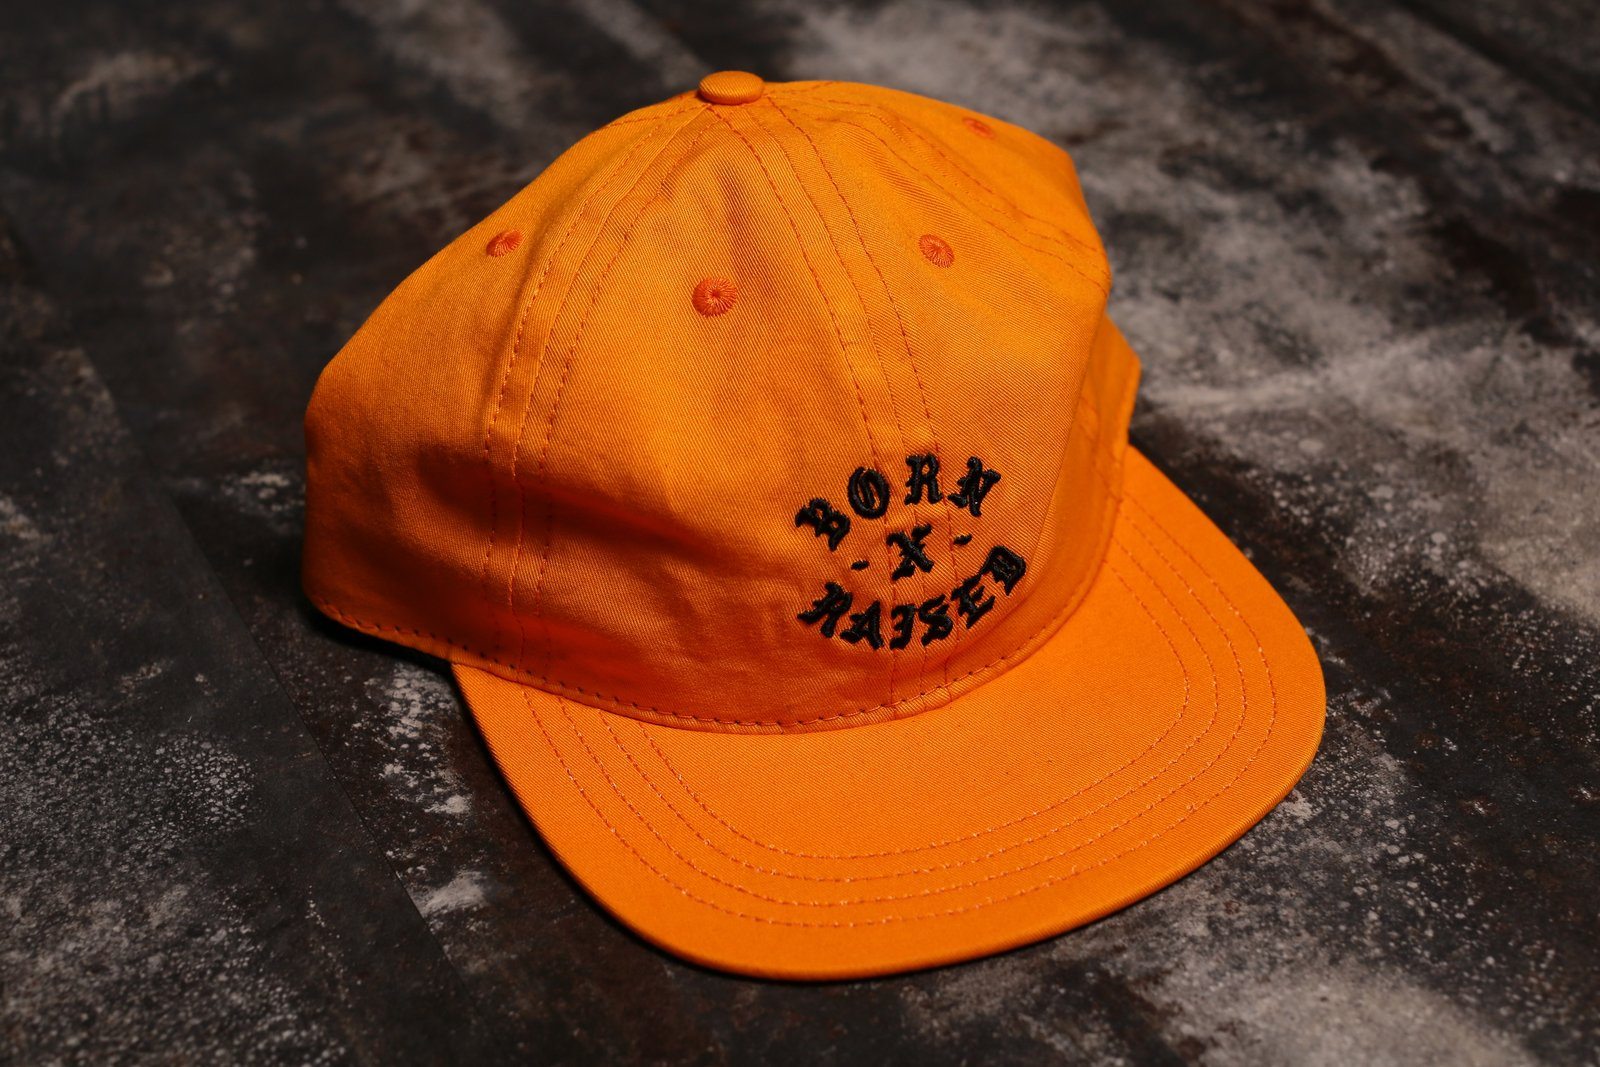 BORN x RAISED ROCKER STRAPBACK